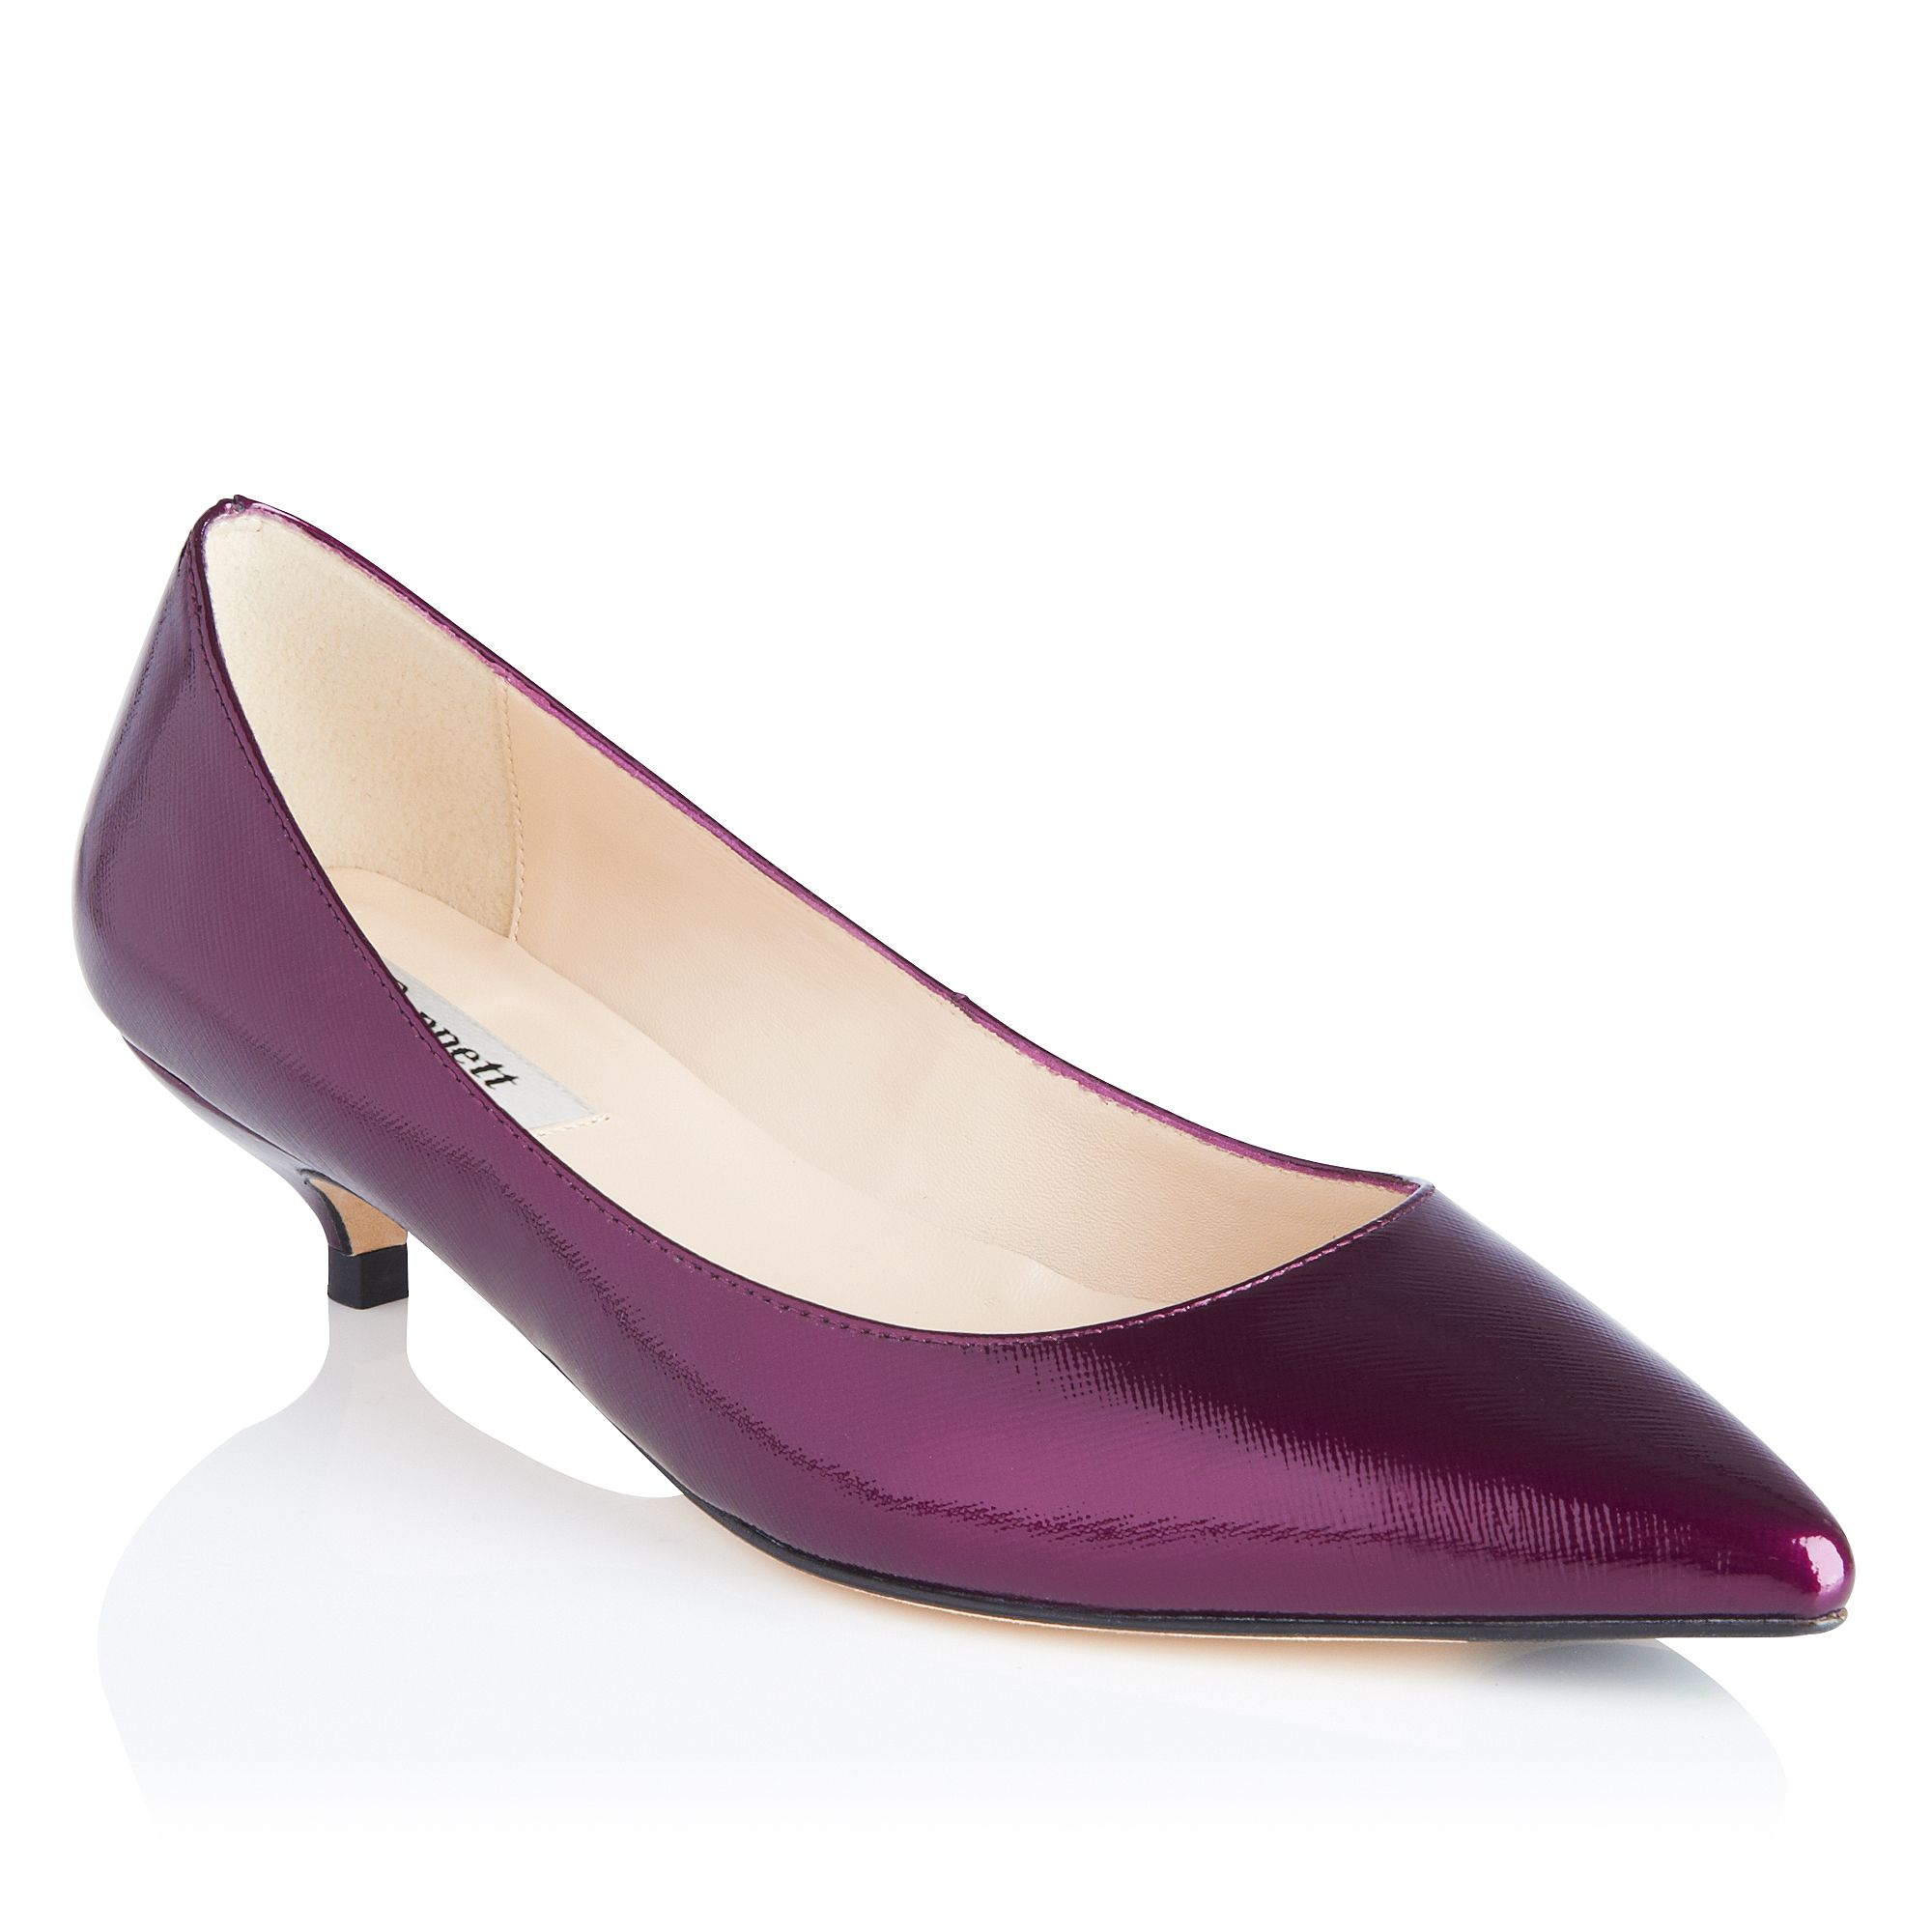 L.k.bennett Kitty Patent Leather Mini Kitten Heel Shoes in Purple